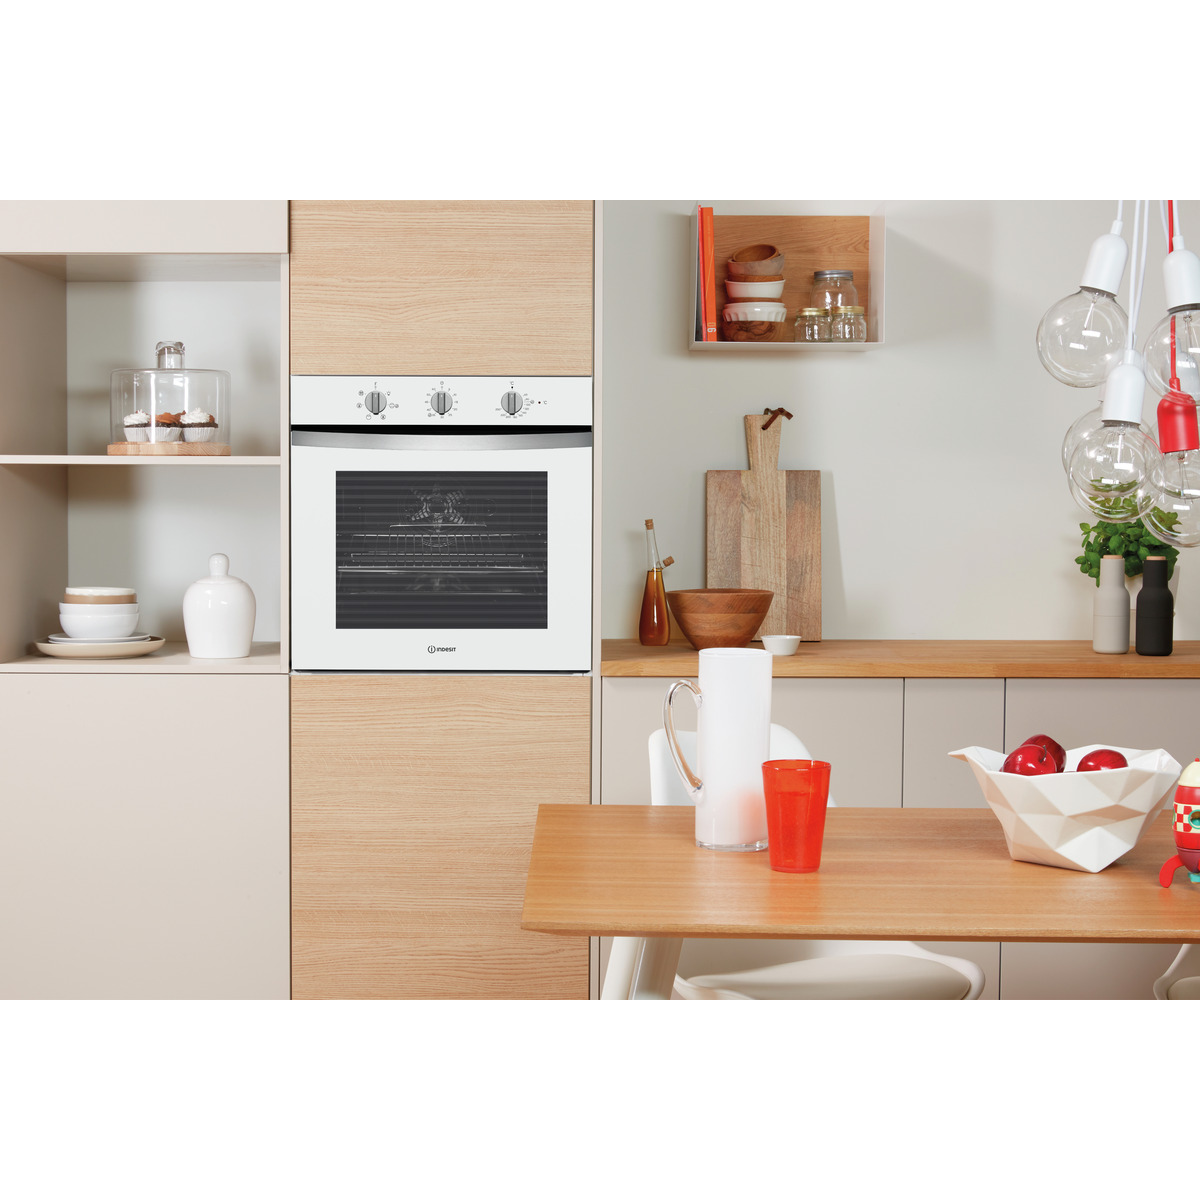 Indesit IFW 4534 H WH forno 71 L A Bianco